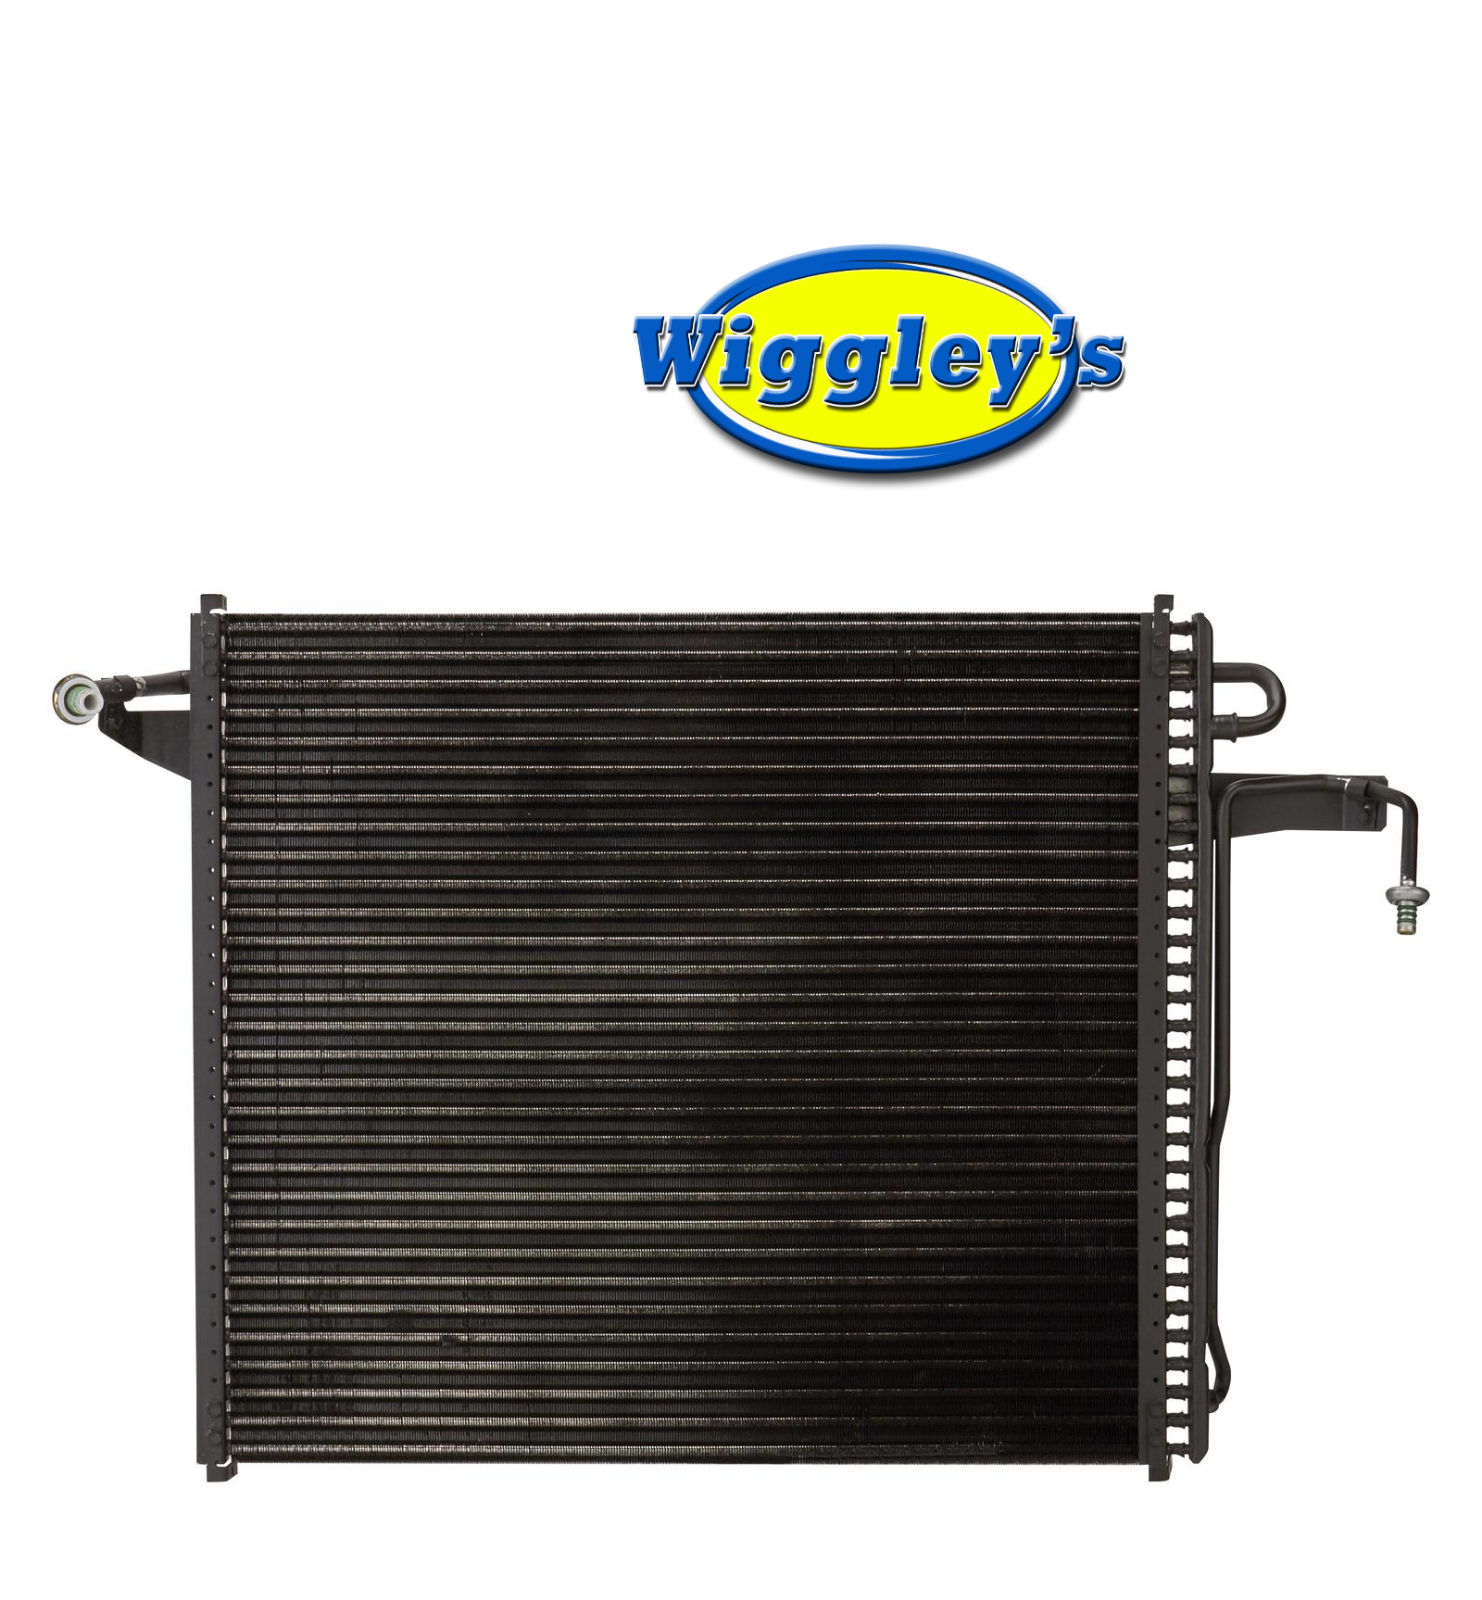 A/C CONDENSER W/ OHV ENGINE FO3030140 FOR 95 96 97 FORD EXPLORER V6 4.0L